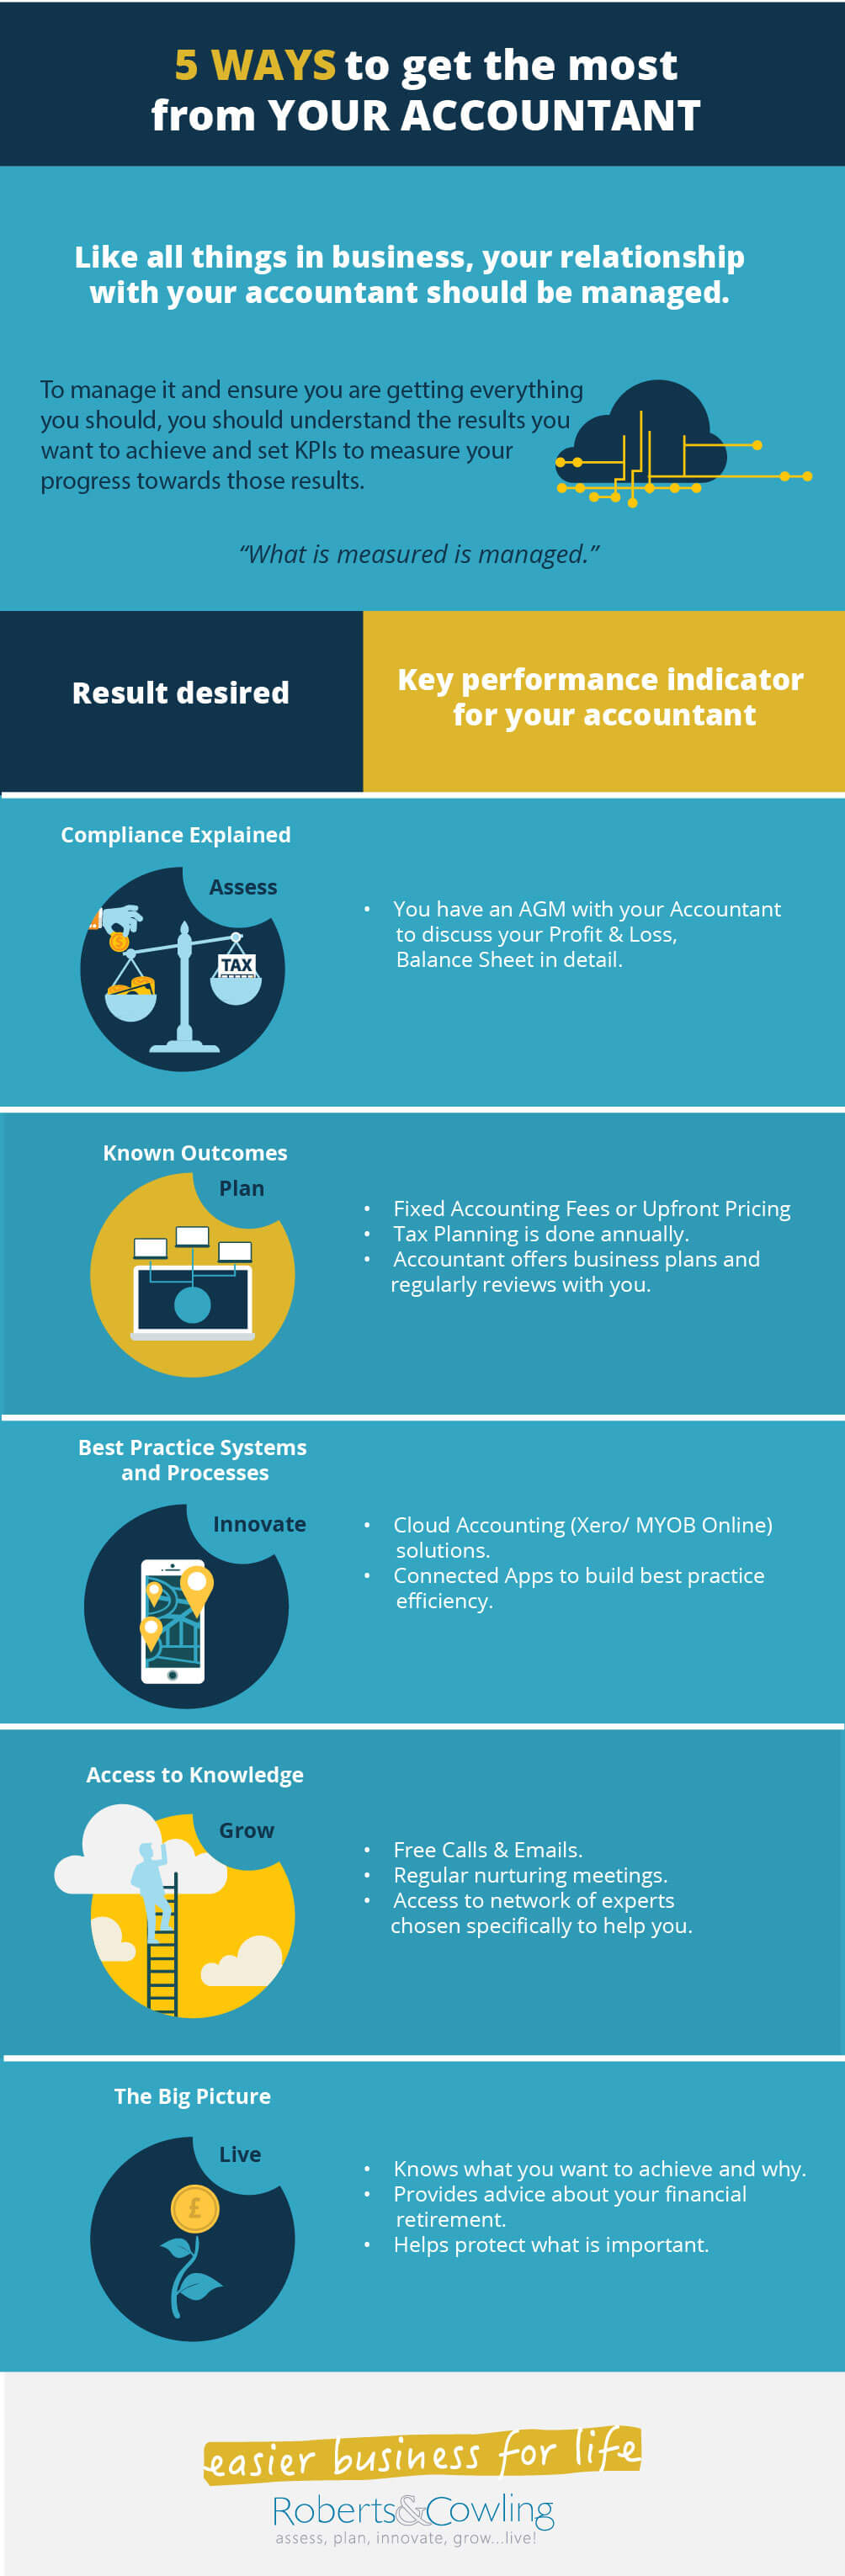 Roberts & Cowling -5 Ways Most From Accountant Infographic